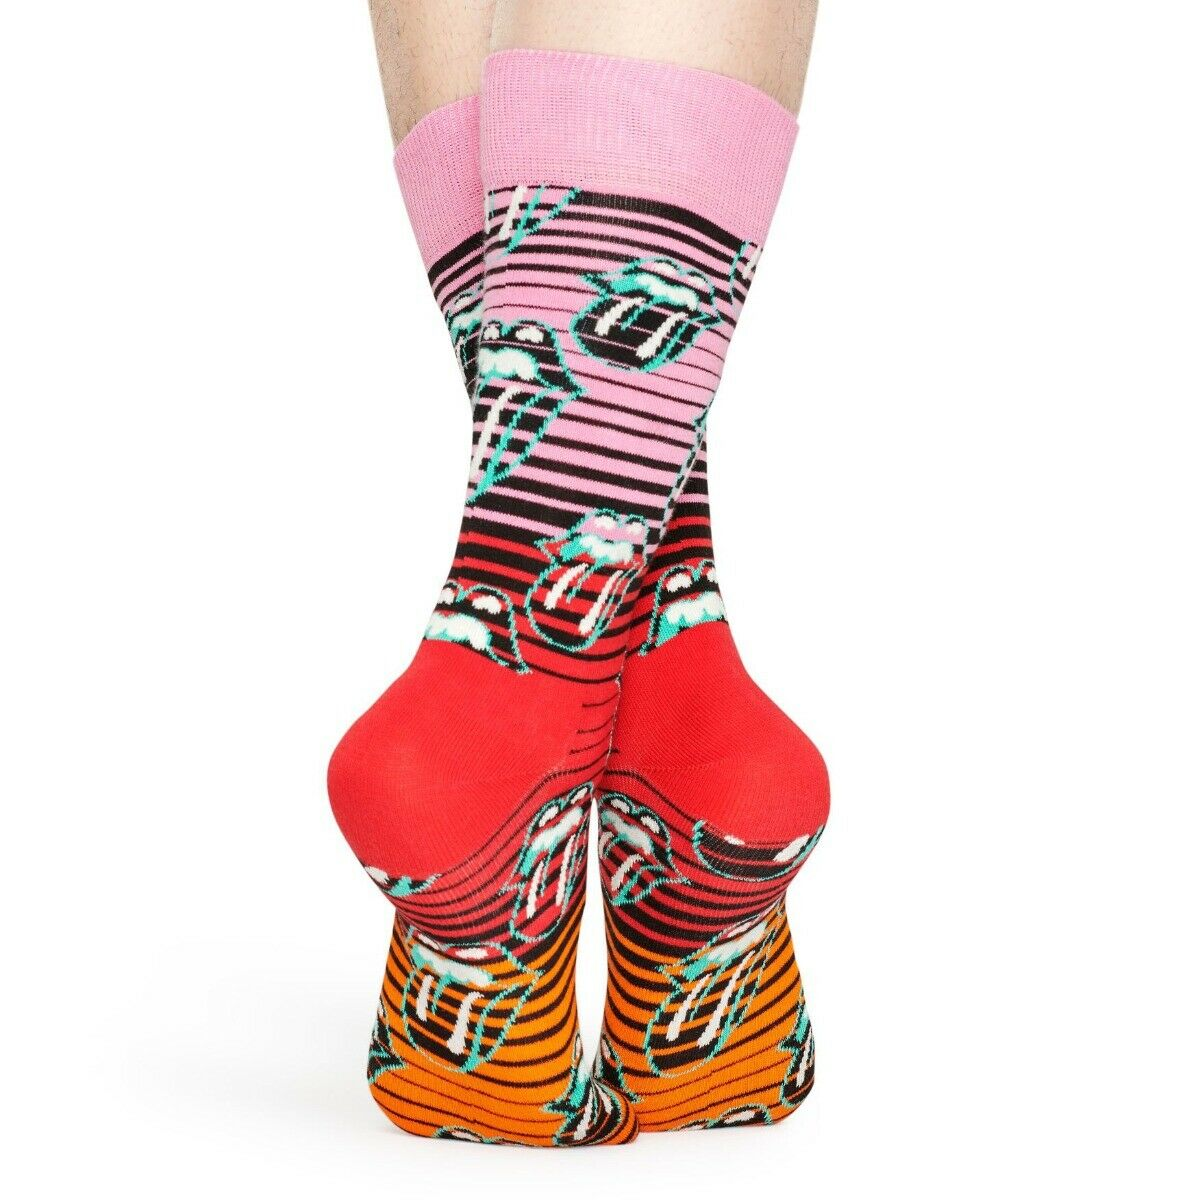 Happy Socks Unisex Socks From the Newest Collection